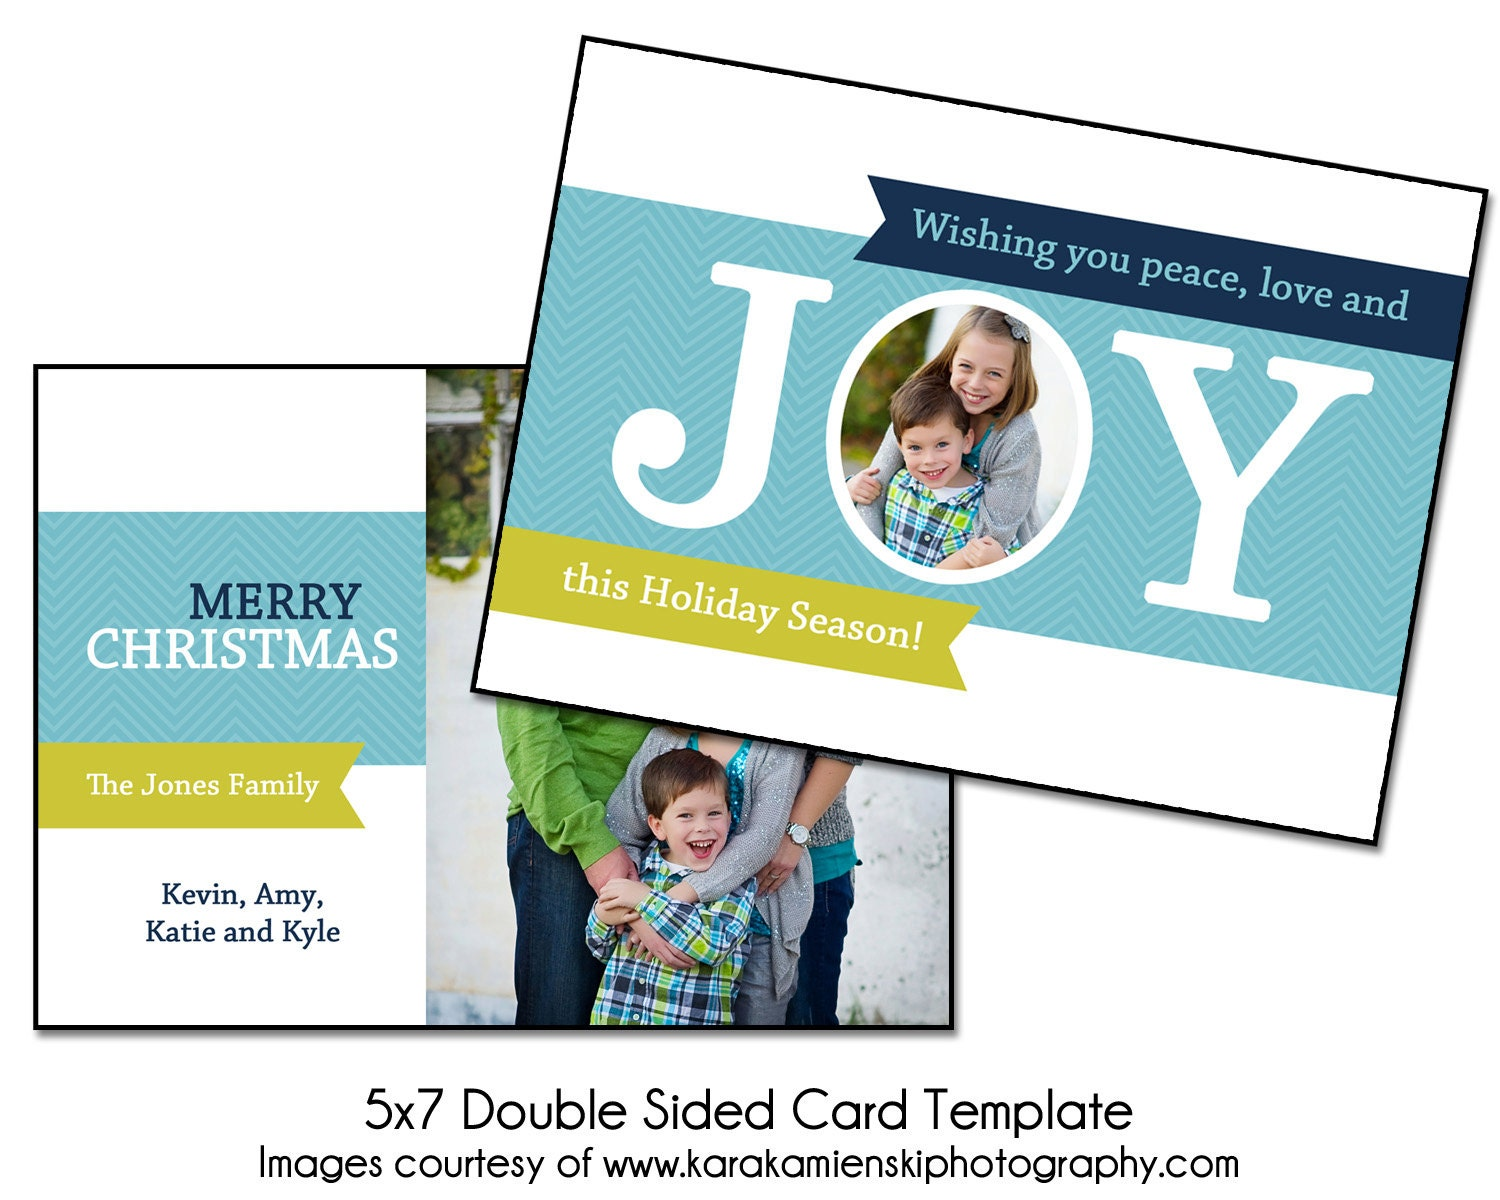 christmas card template joy 5x7 double sided card template. Black Bedroom Furniture Sets. Home Design Ideas